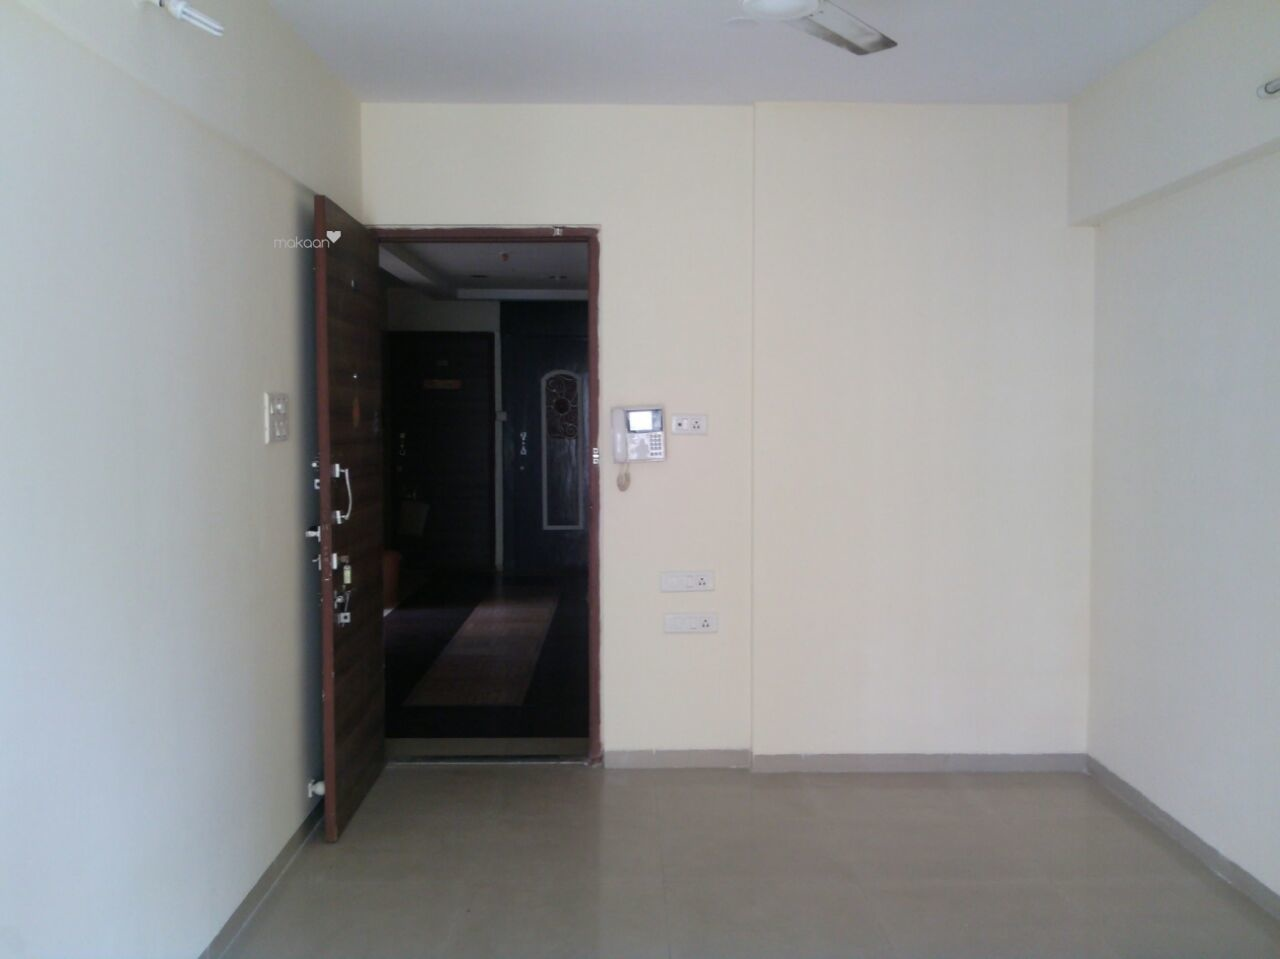 1000 sq ft 2BHK 2BHK+2T (1,000 sq ft) Property By Bhoomi Enterprises In Project, Kharghar